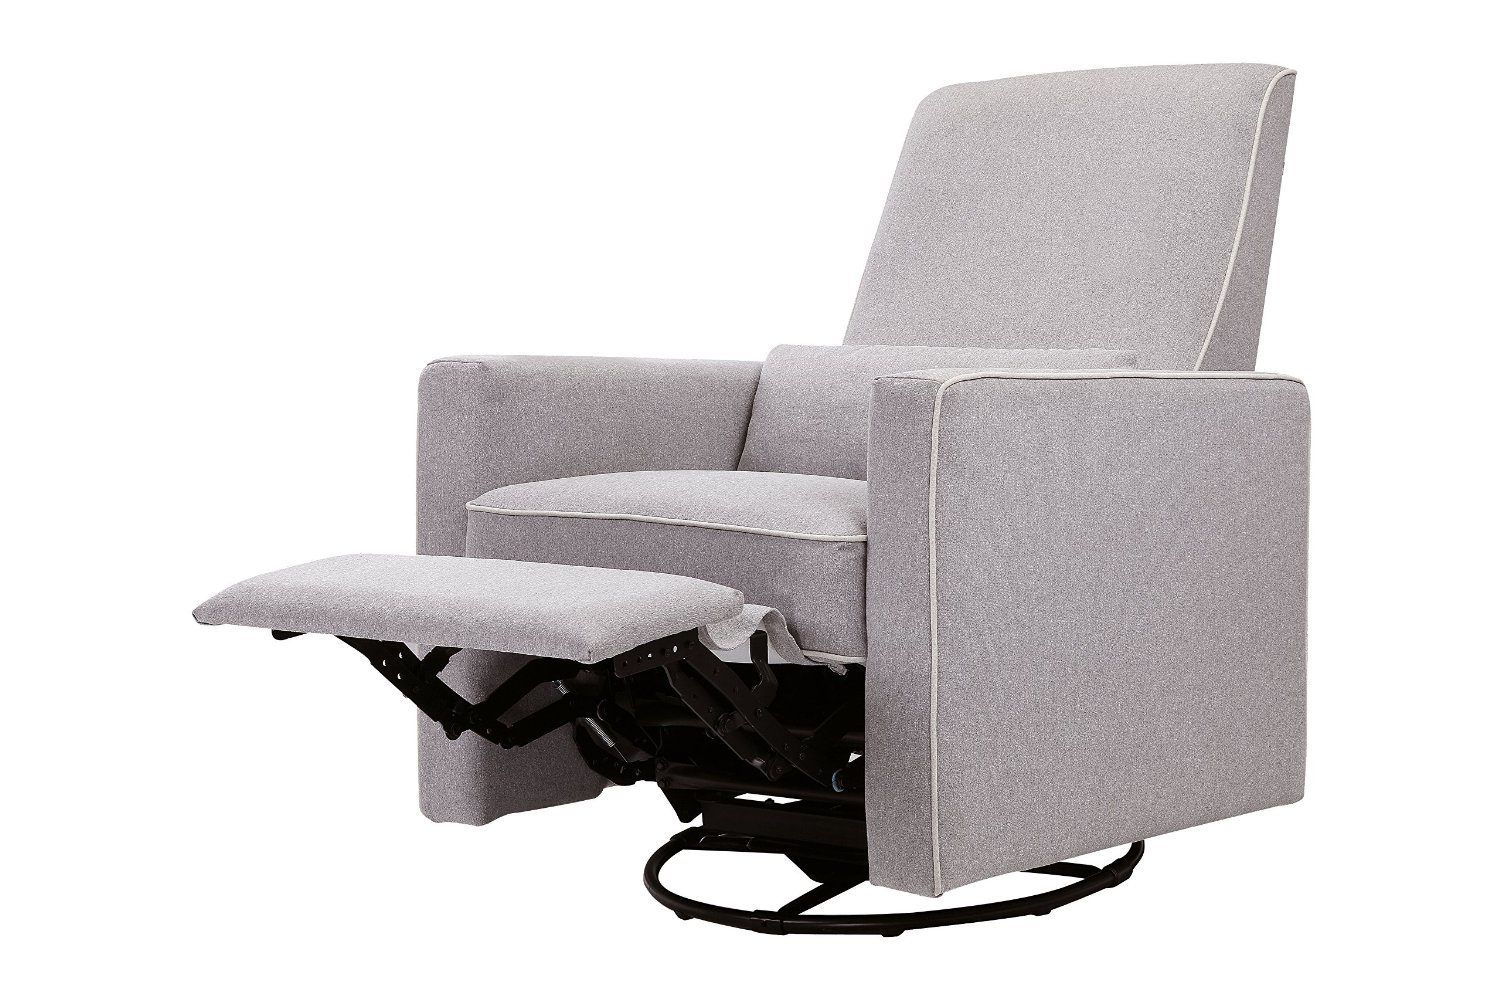 Best Small Recliners For Small People